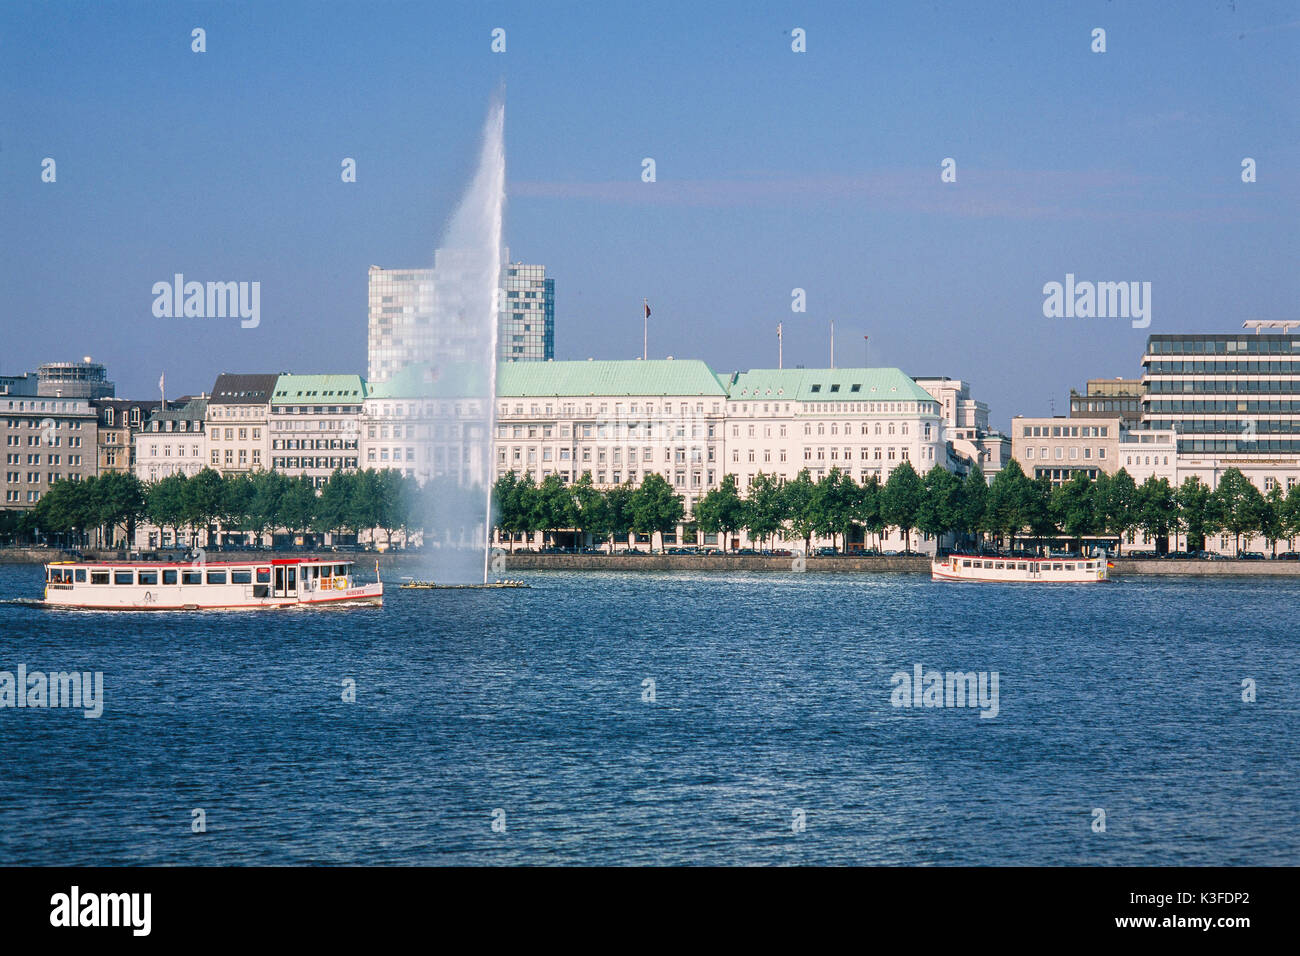 Water jet on the Inner Alster in front of the Fairmont hotel Four seasons, Hamburg Stock Photo